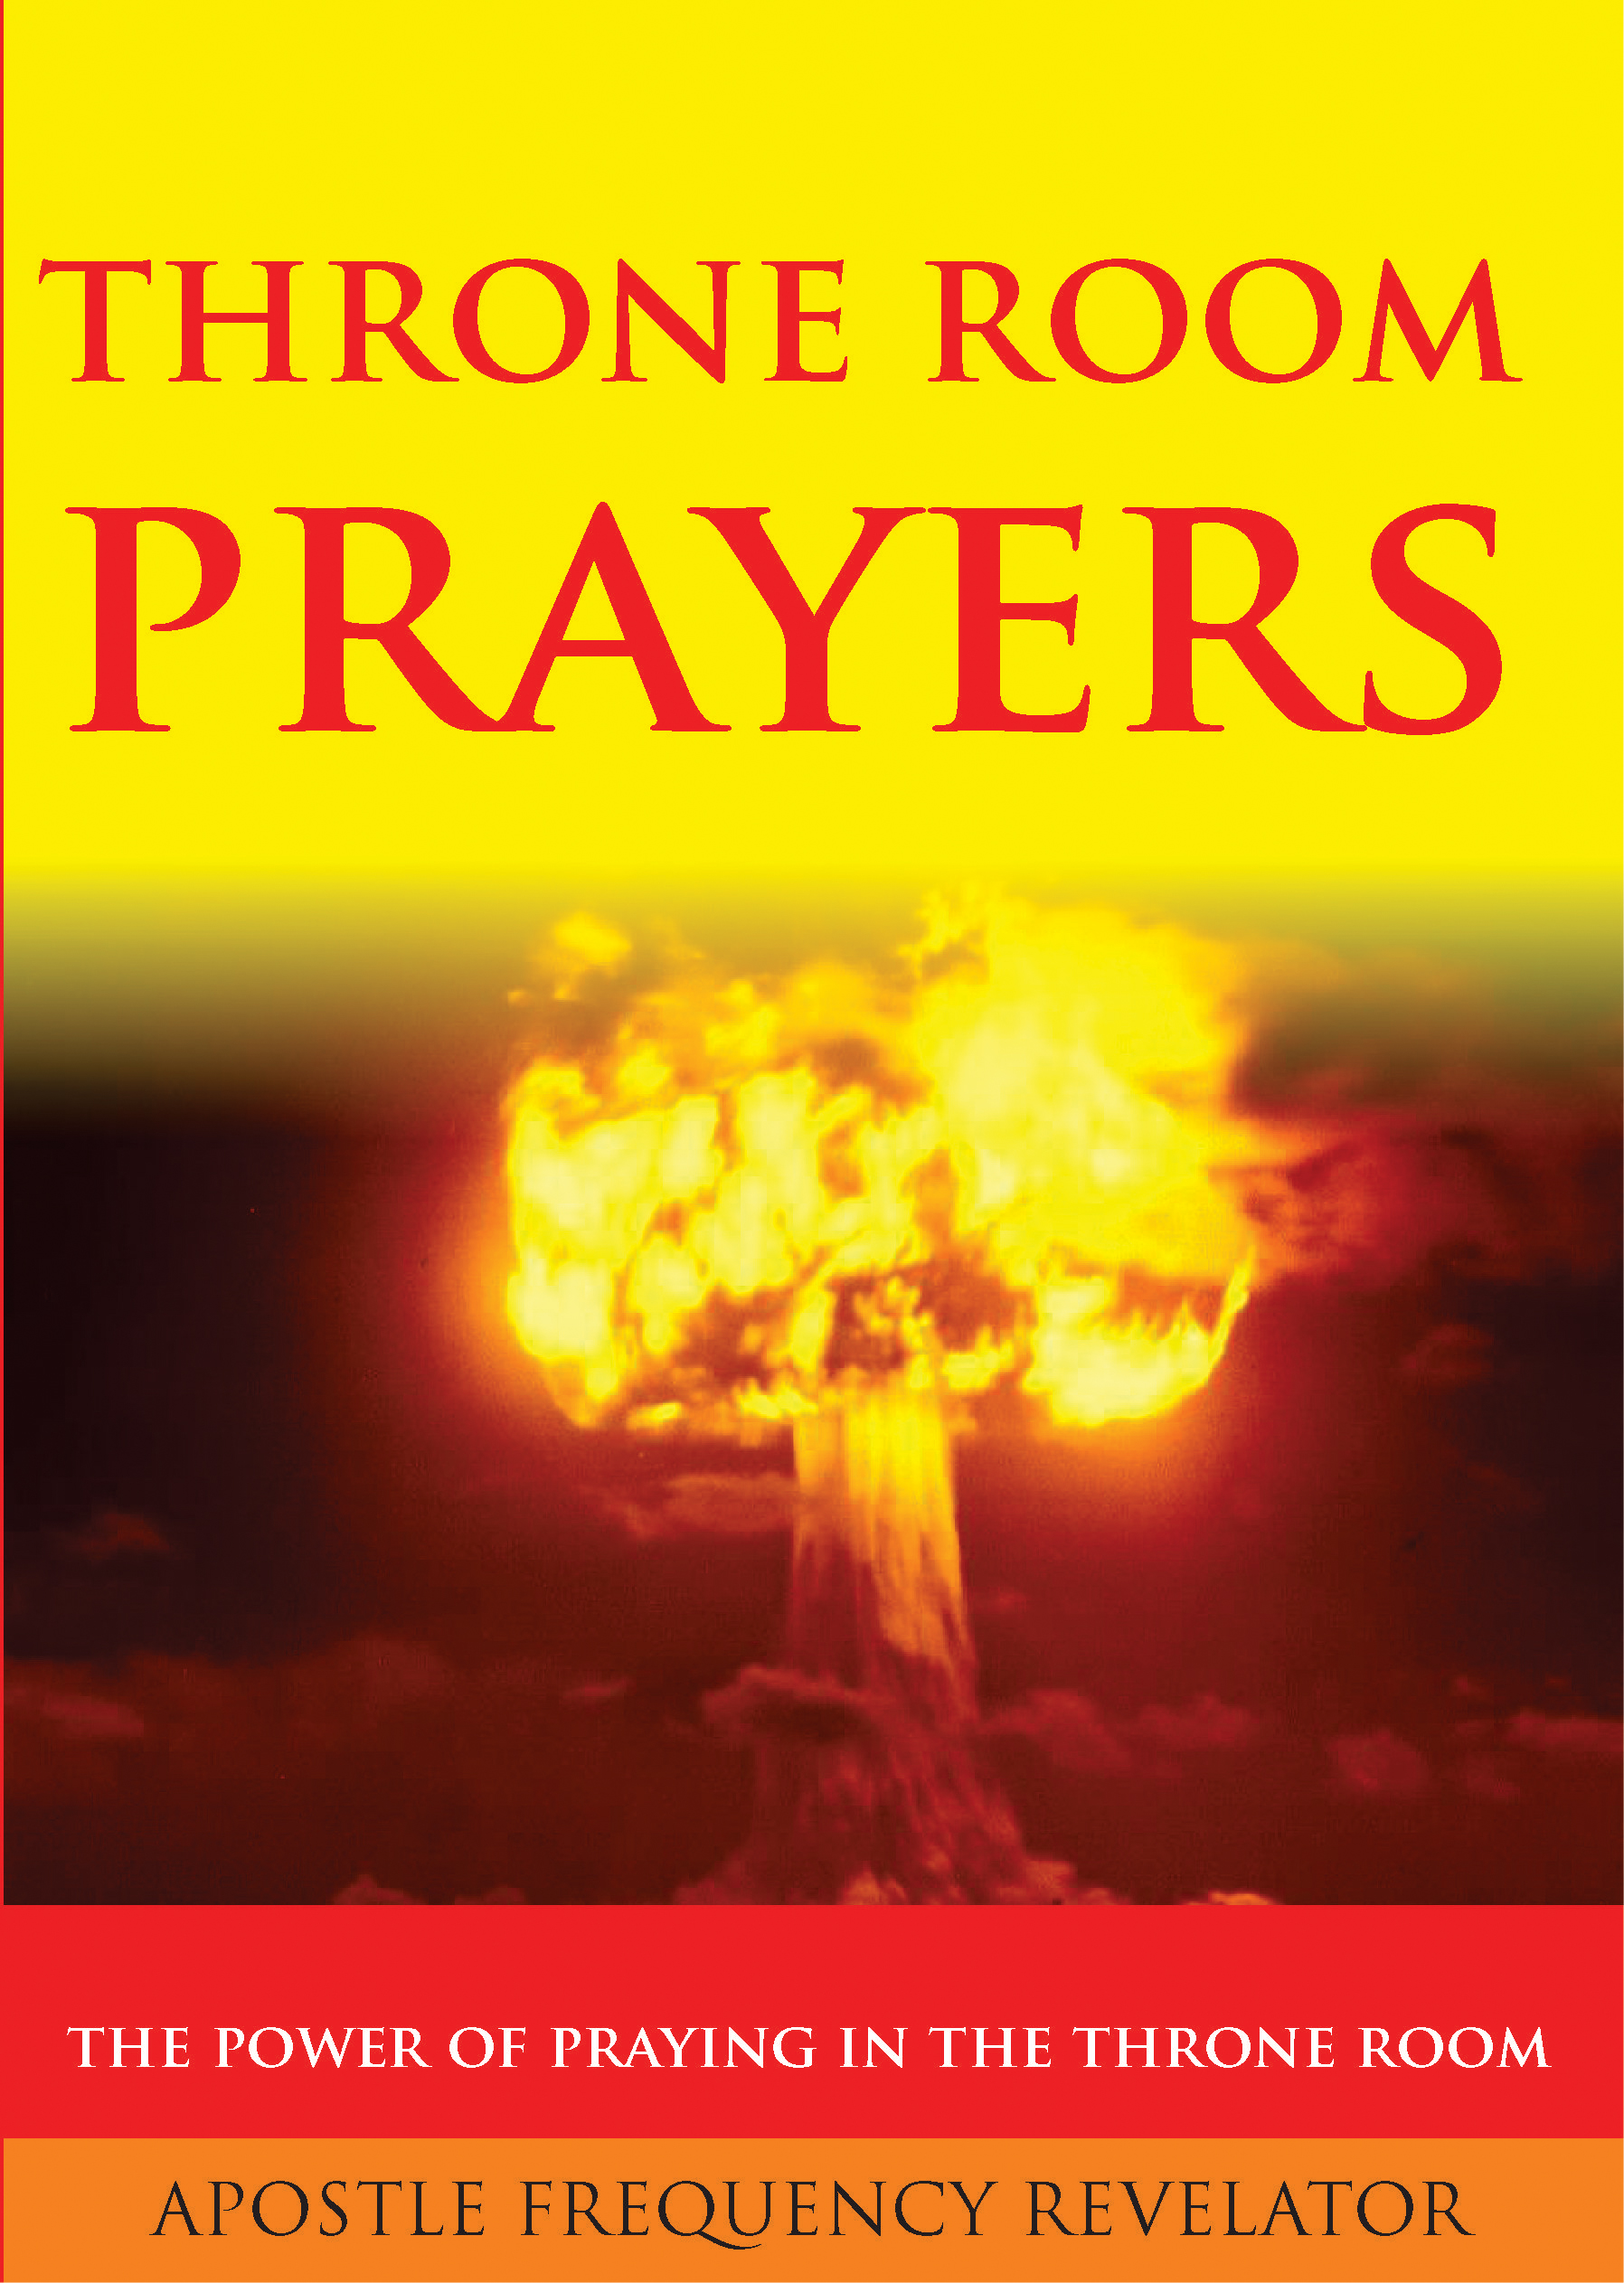 Throne Room Prayers: Unleashing The Power Of Praying In The Throne Room, an  Ebook by Apostle Frequency Revelator